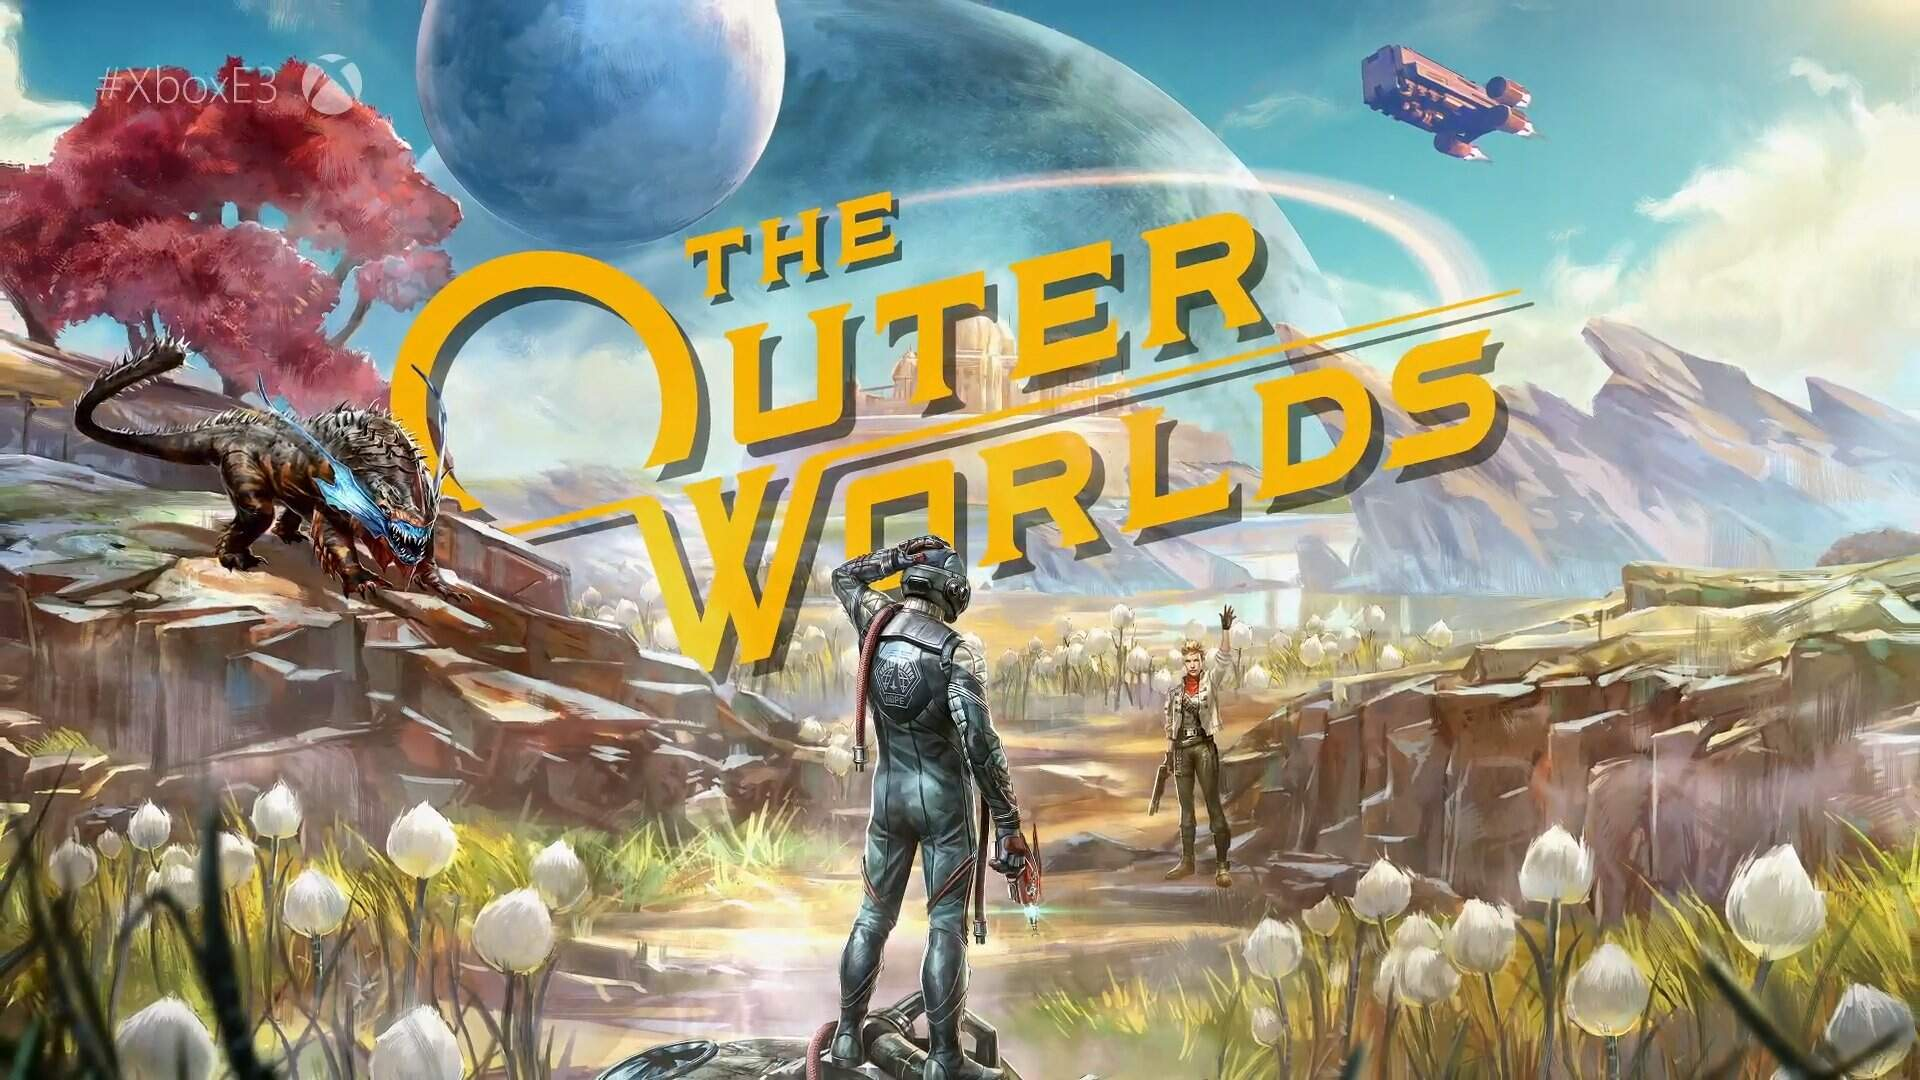 The Outer Worlds Release Date, E3 2019 Gameplay, Trailer - Everything we Know